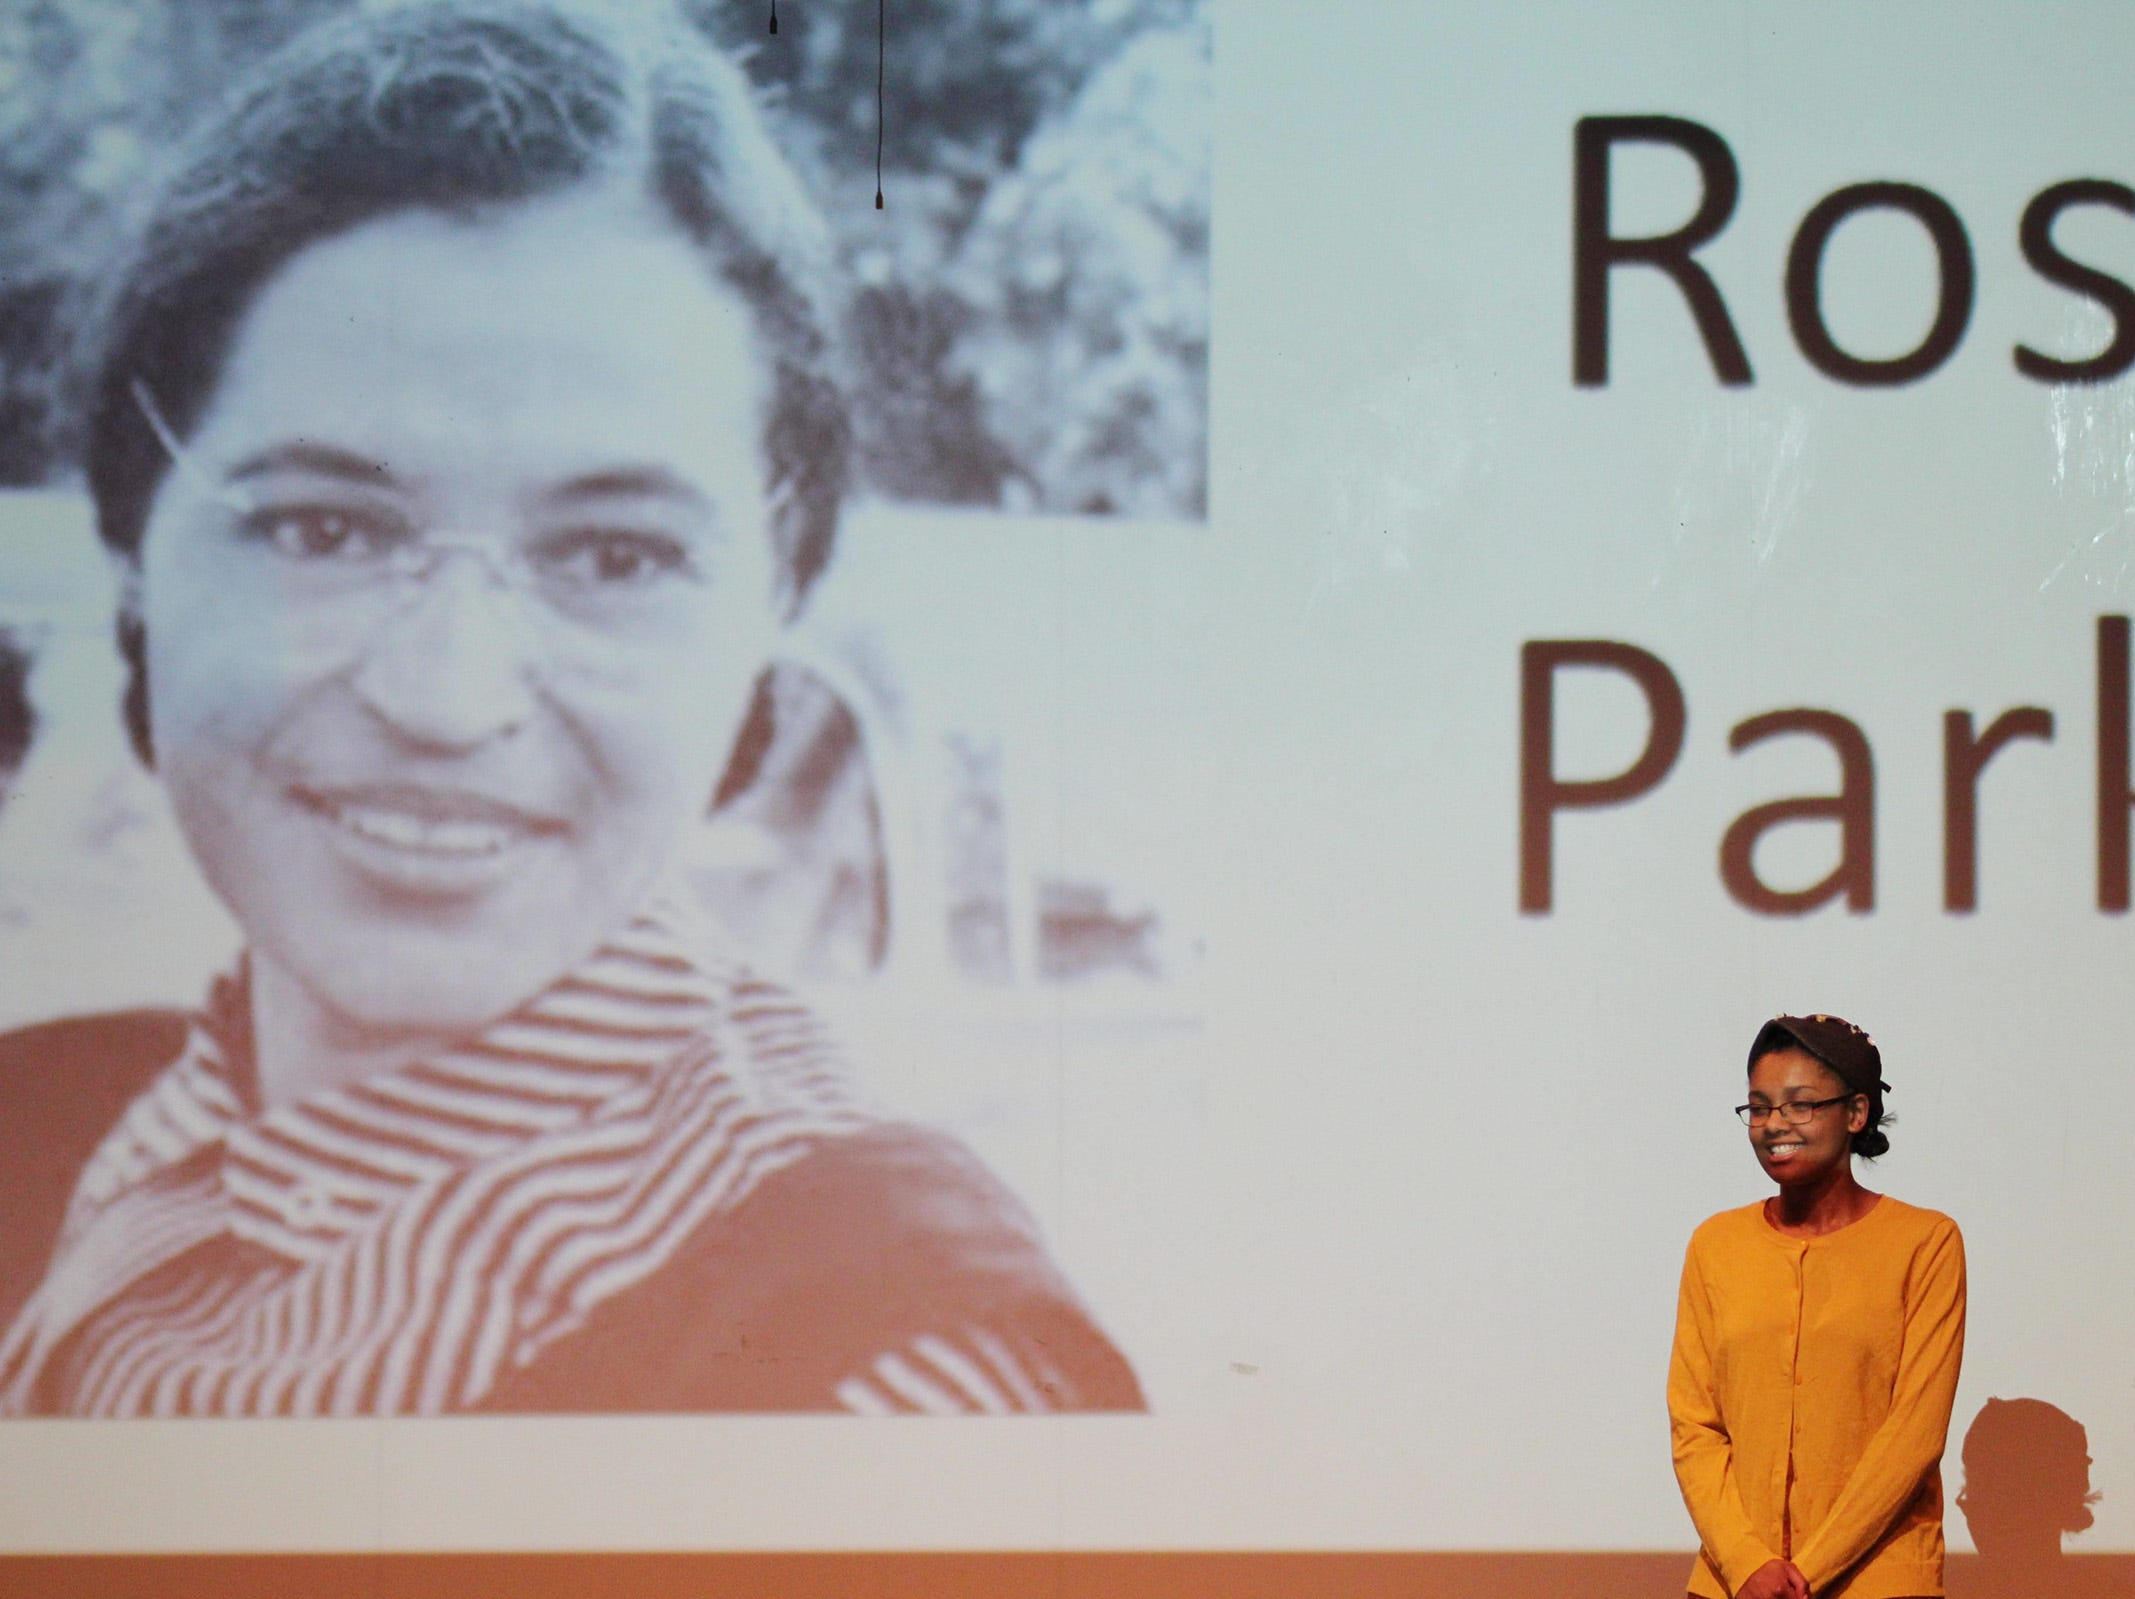 McKay senior Lataya Forks pays tribute to activist Rosa Parks at the Black History Month Community Event at McKay High School in Salem on Thursday, Feb. 28, 2019.